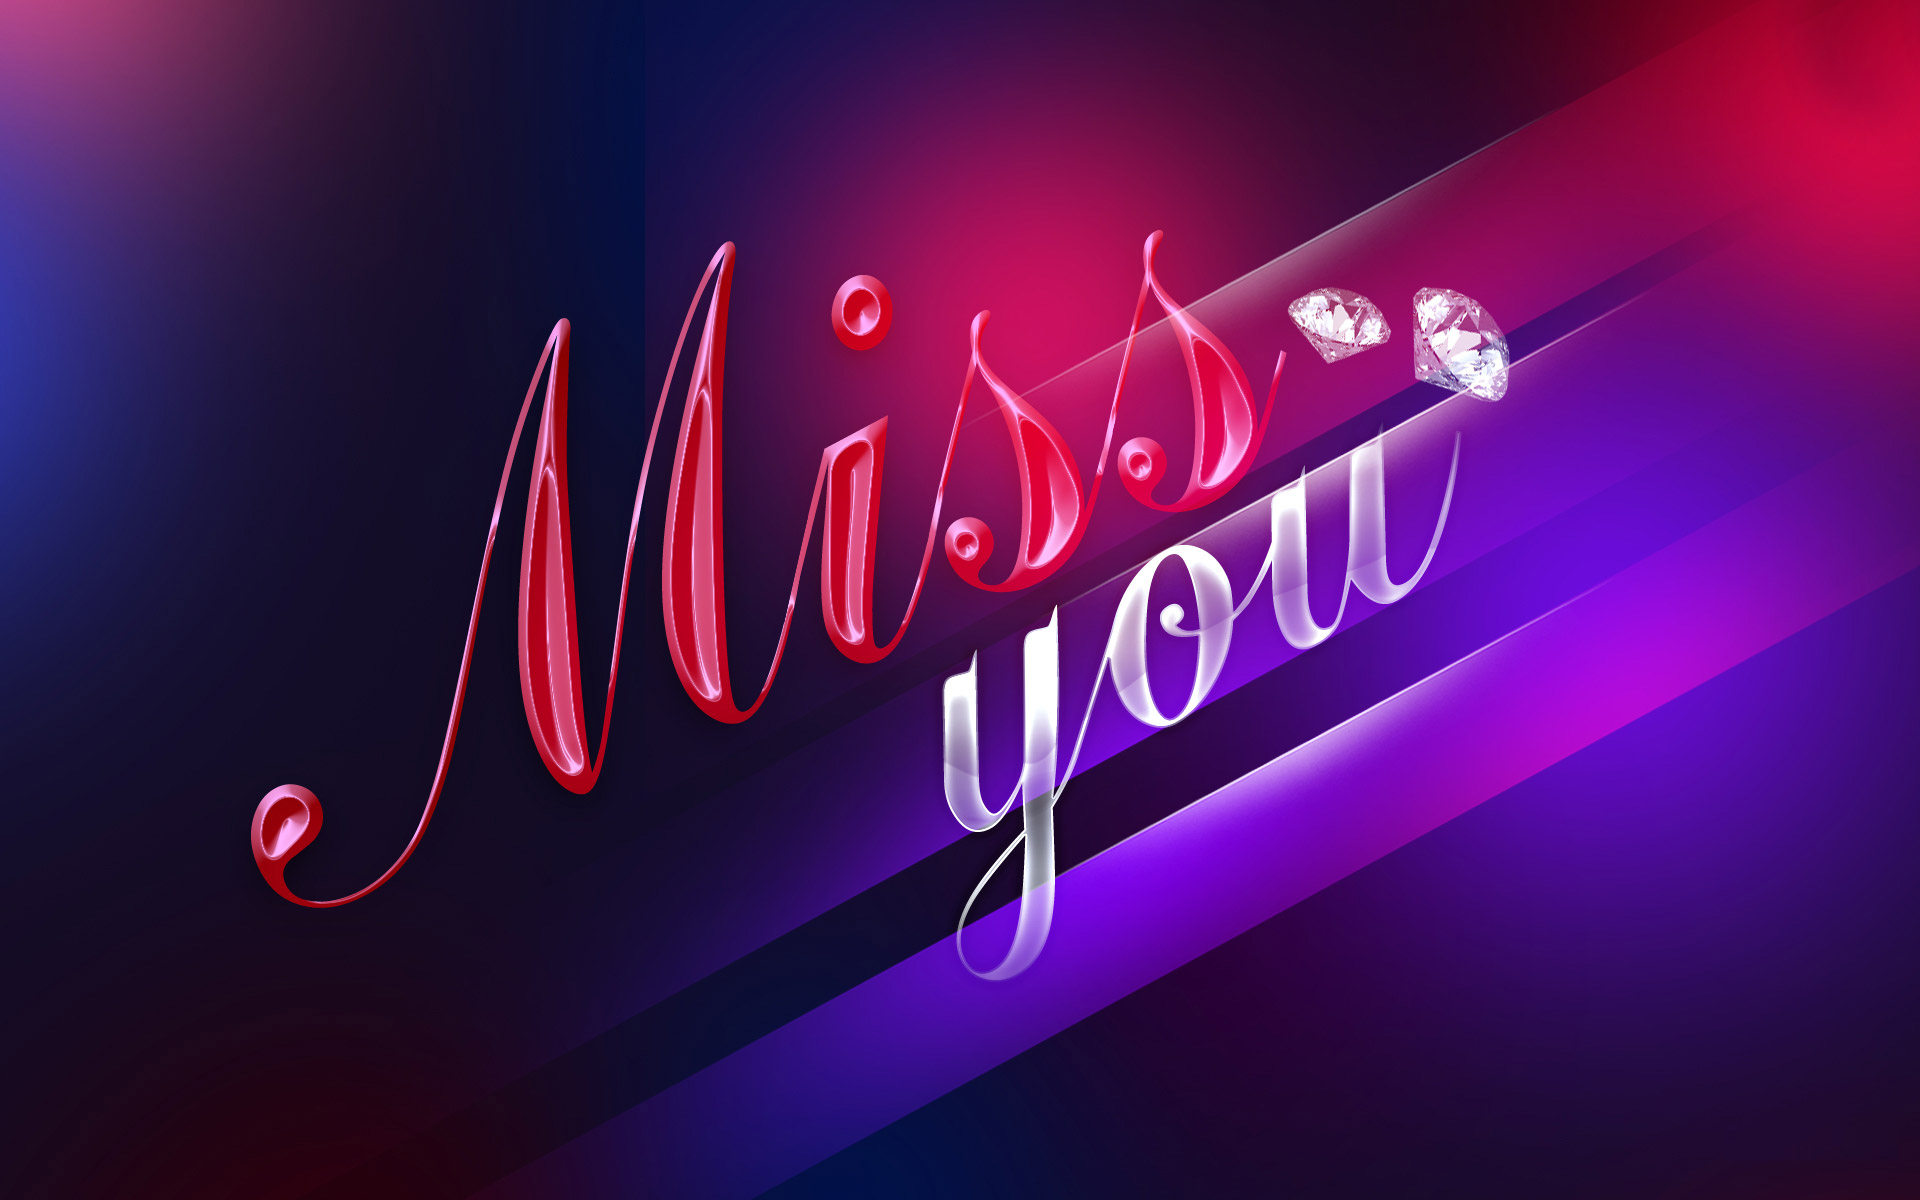 Cute I Miss You Hd Wallpapers   Wallducom 1920x1200